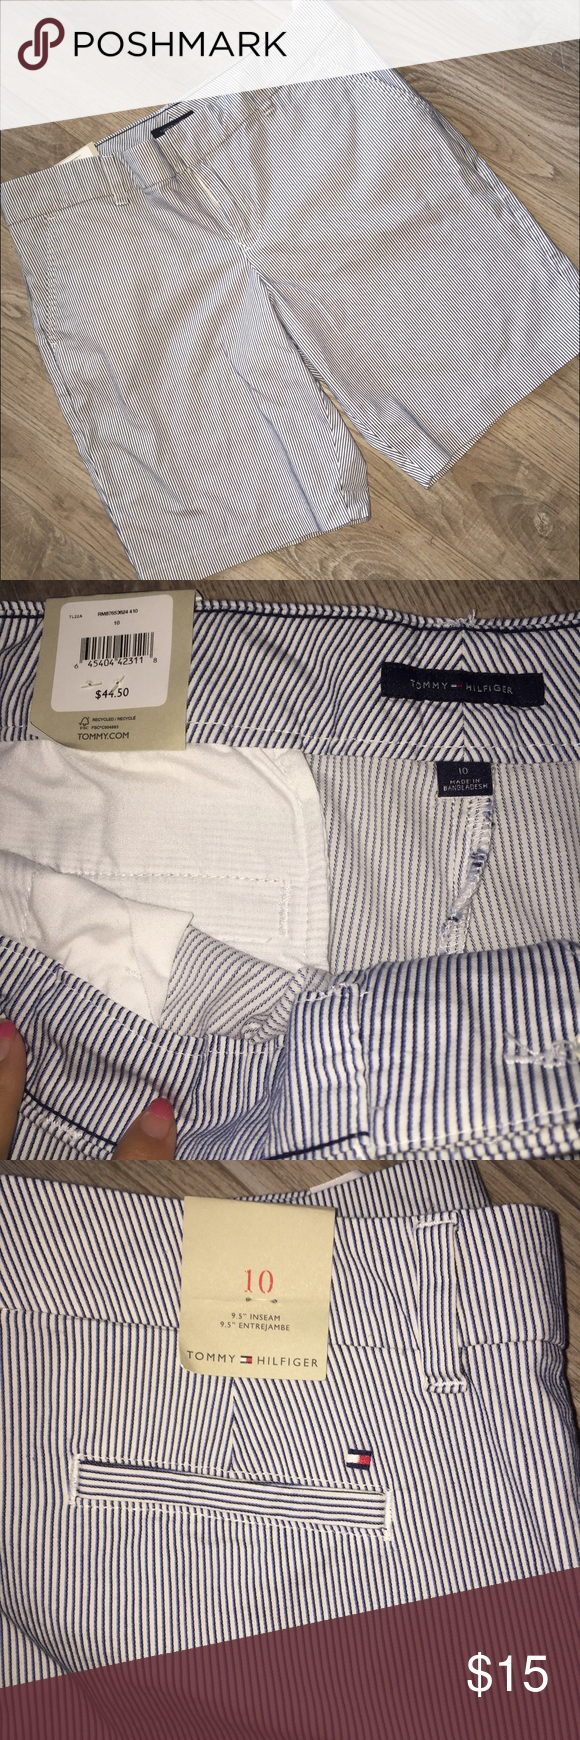 ⚡️SALE NWT Tommy Hilfiger Shorts Blue and white seersucker pinstripe pattern. Tommy Hilfiger Shorts